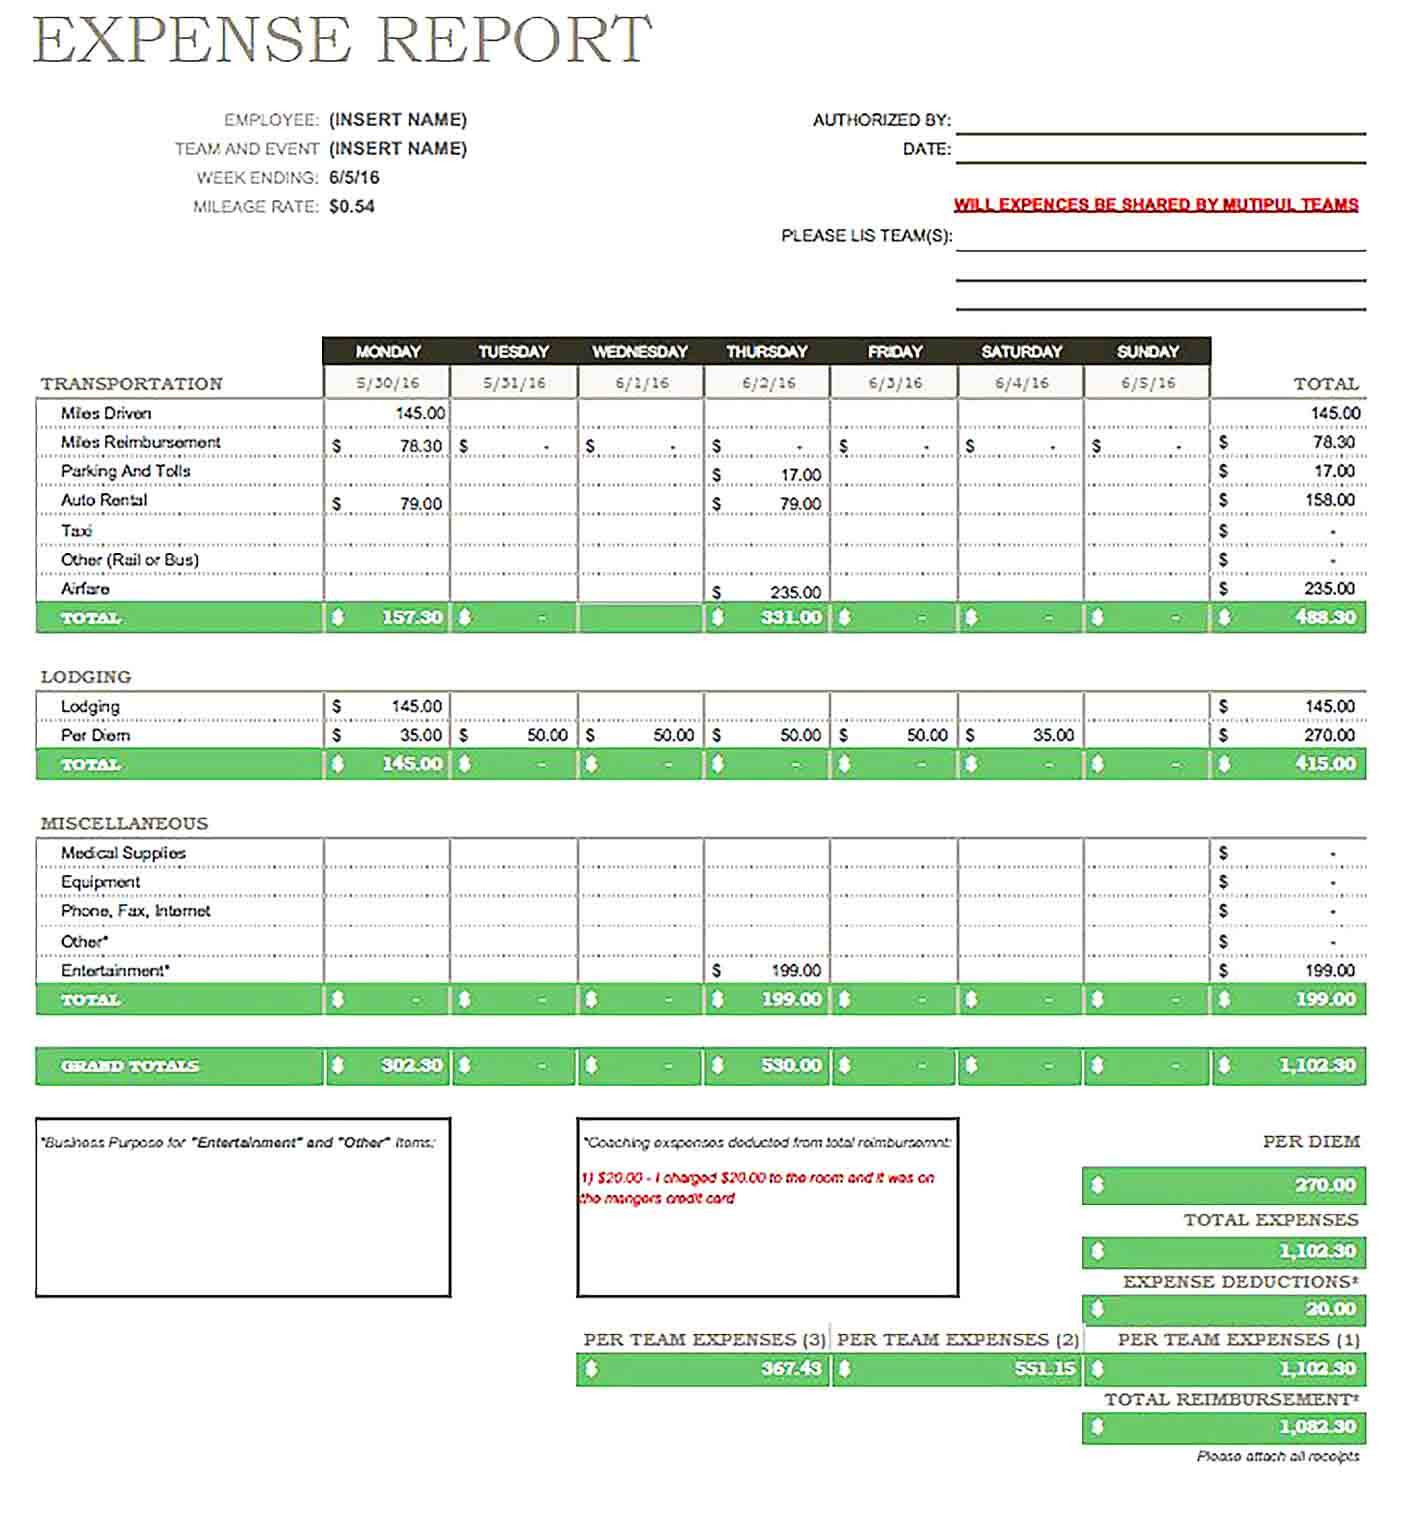 Sample Expense Report